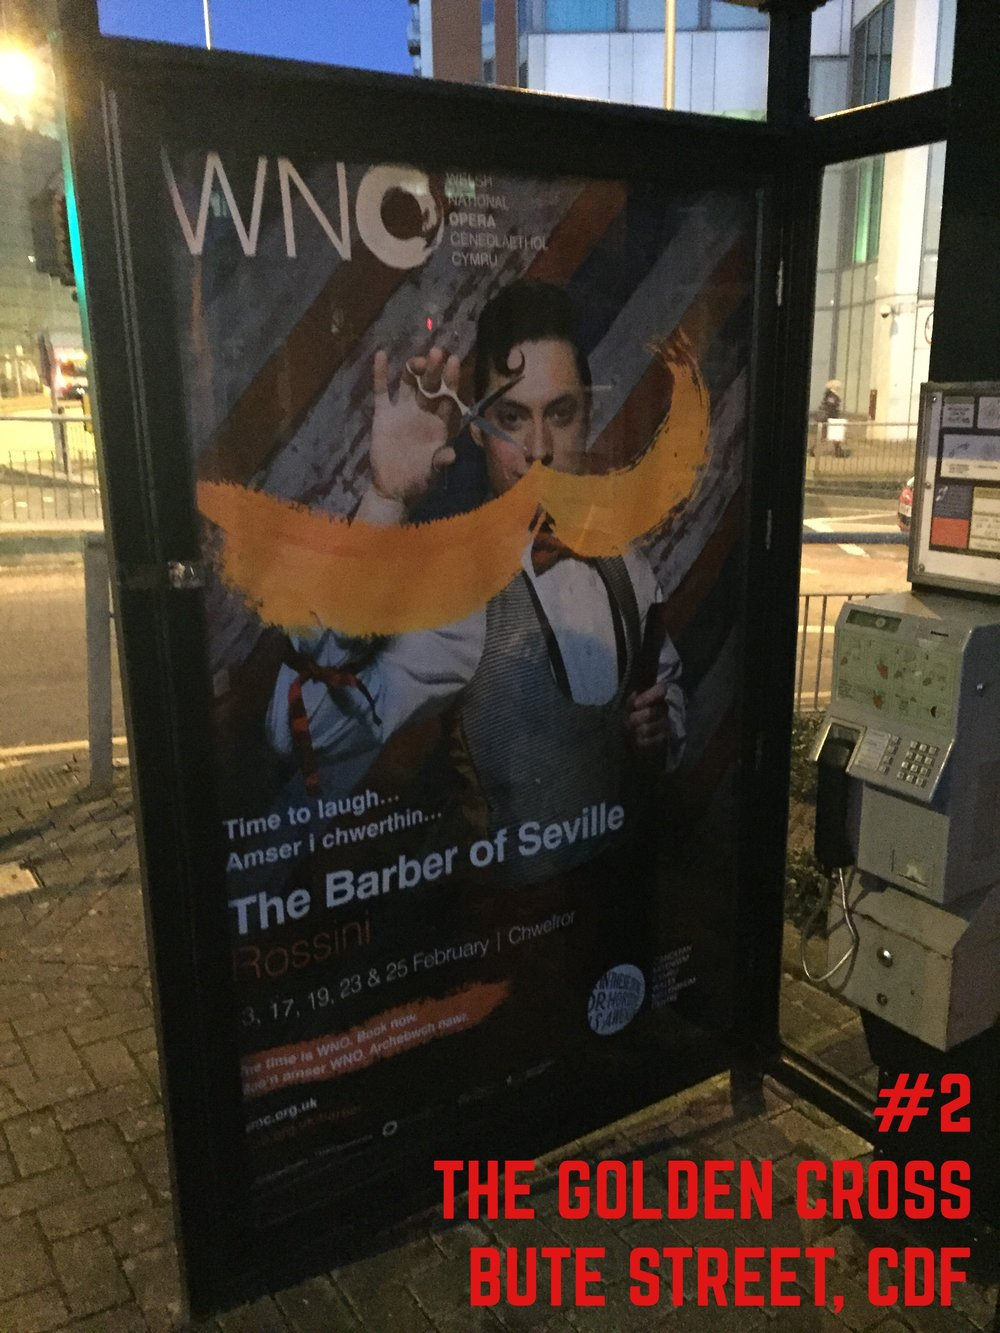 Barber of Seville poster spotted by the Golden Cross, Cardiff